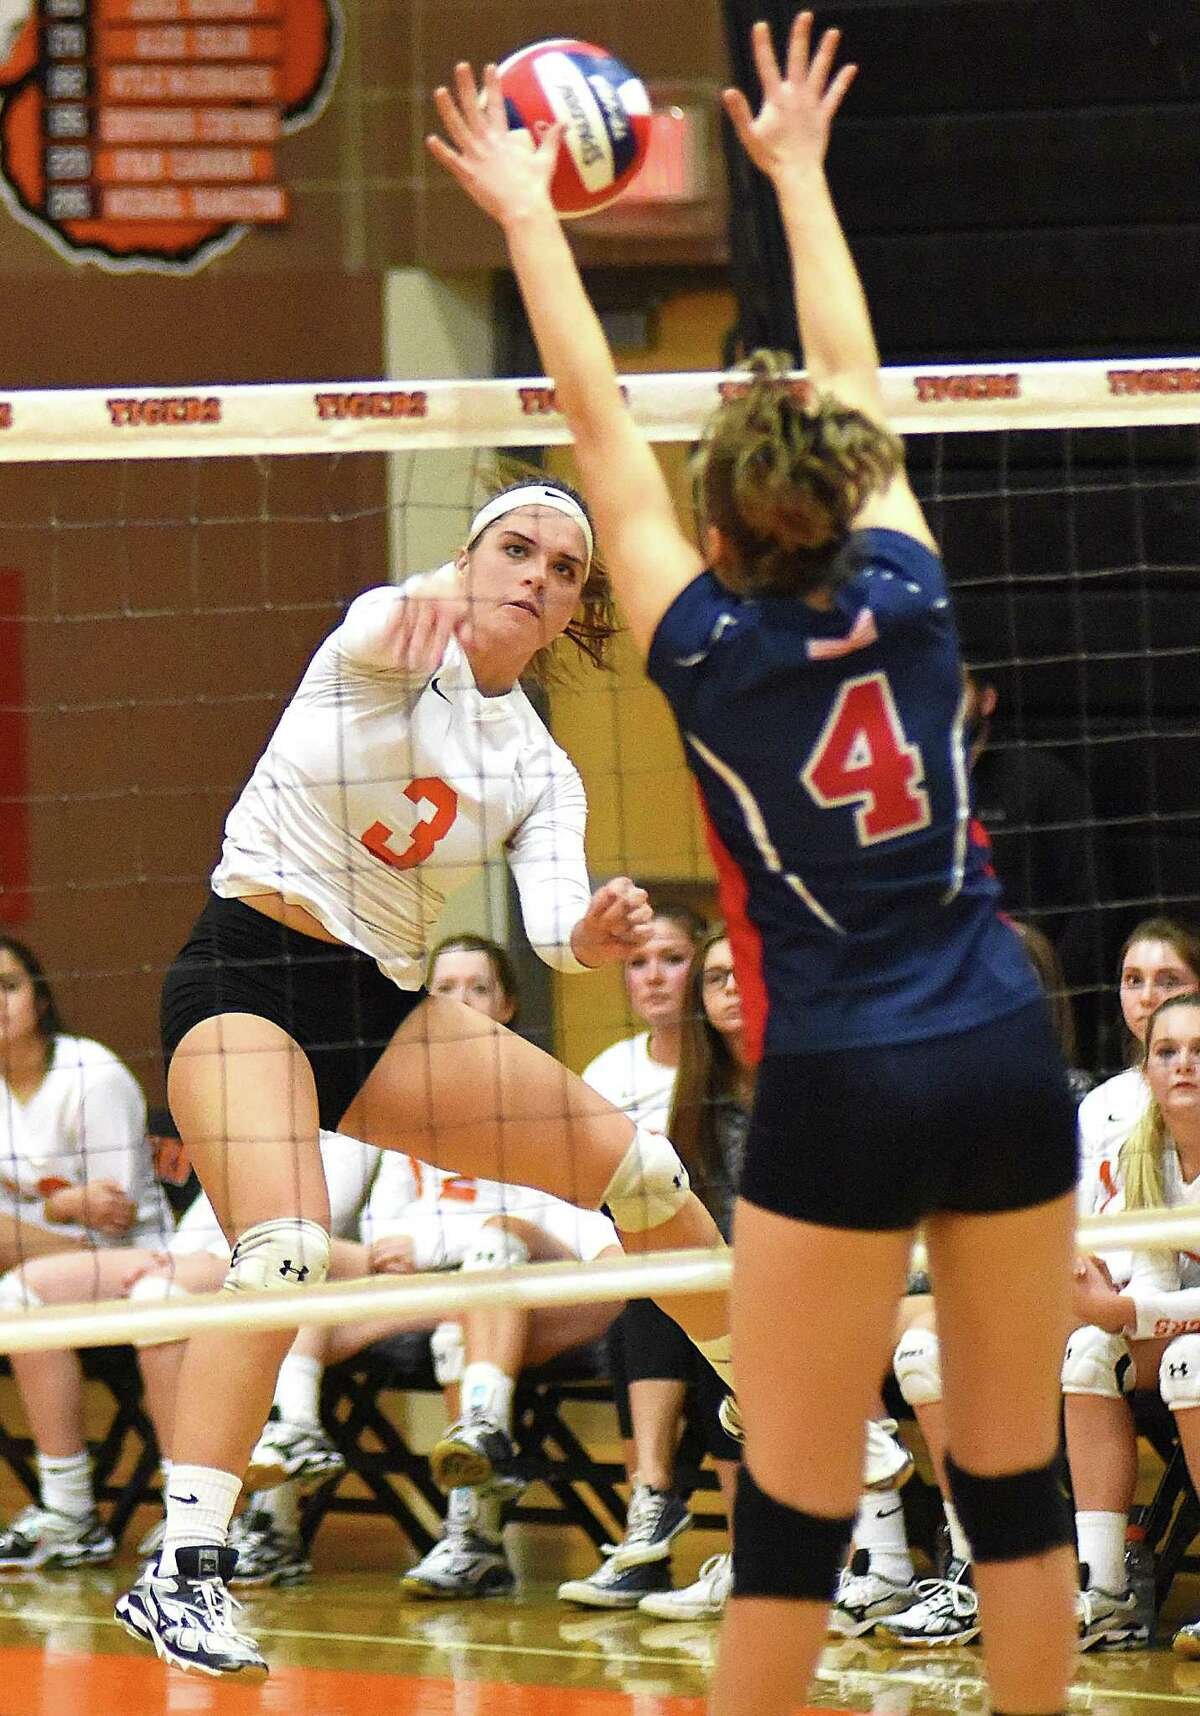 Ridgefield's Caroline Curnal, left, fires a shot past Brien McMahon's Julita Przybylska during Saturday afternoon's CIAC Class LL girls volleyball quarterfinal match against Brien McMahon in Ridgefield. The Tigers held on for a 3-2 win.